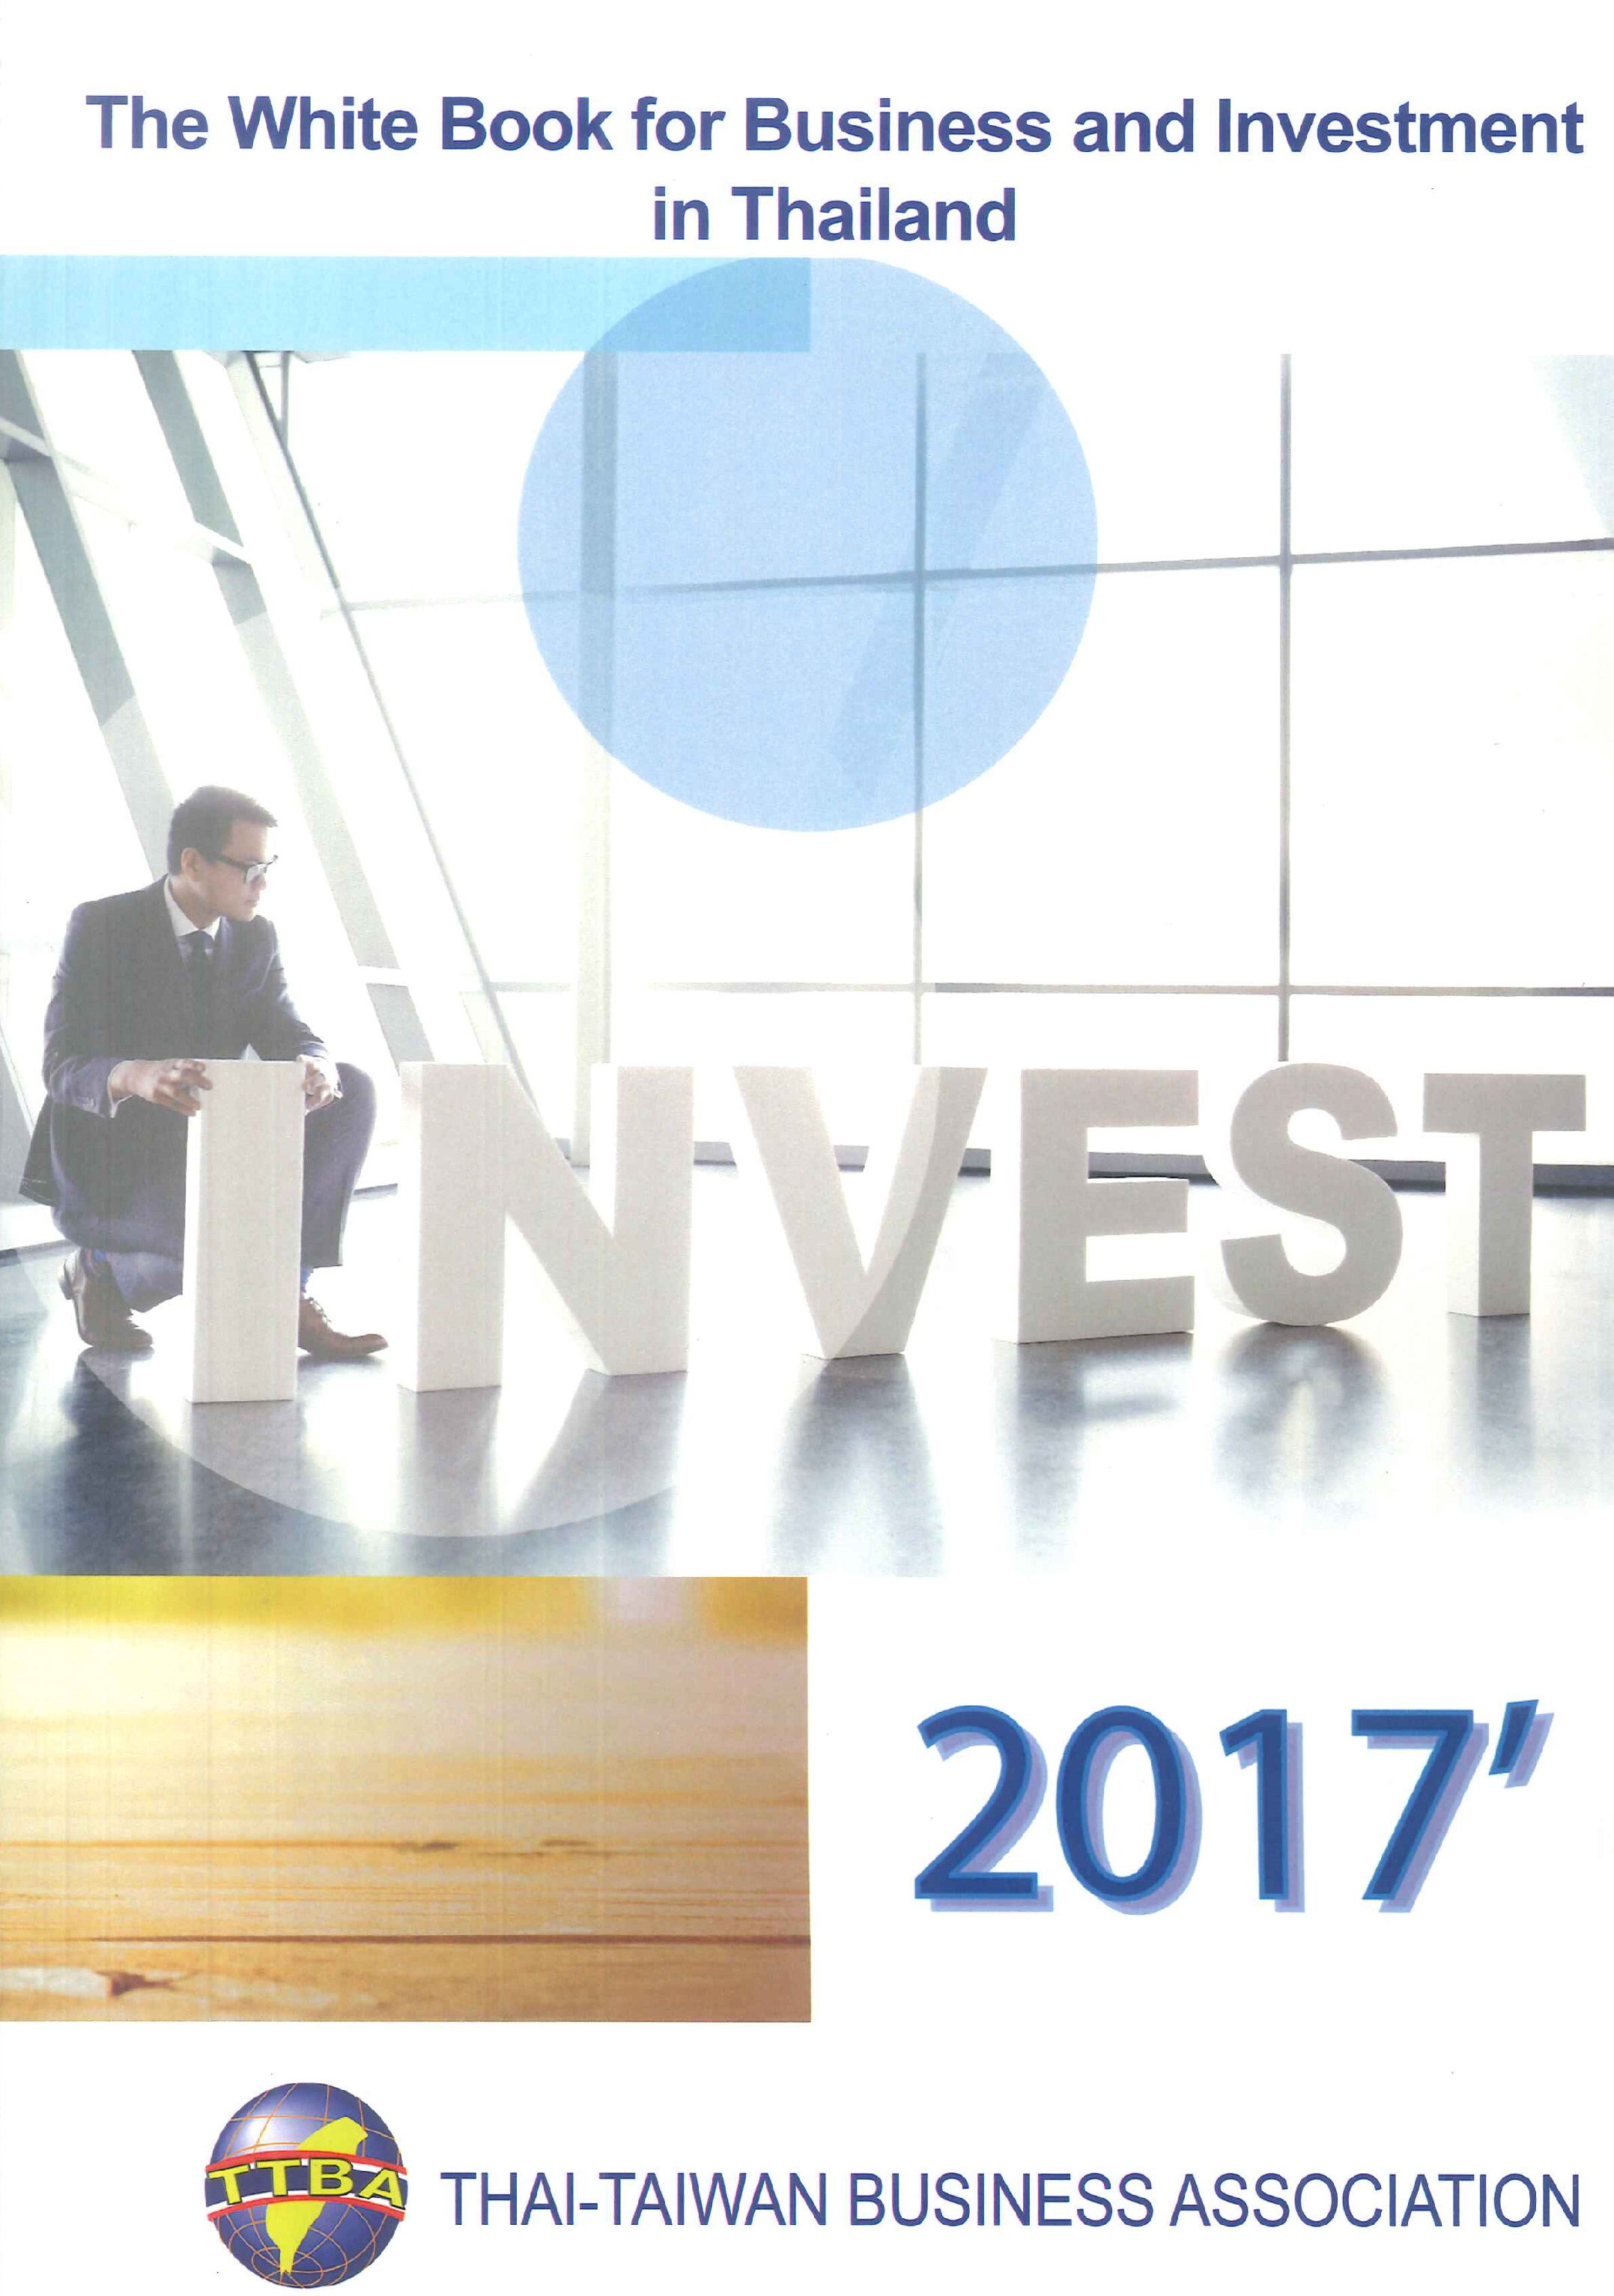 The white book for business and investment in Thailand.2017